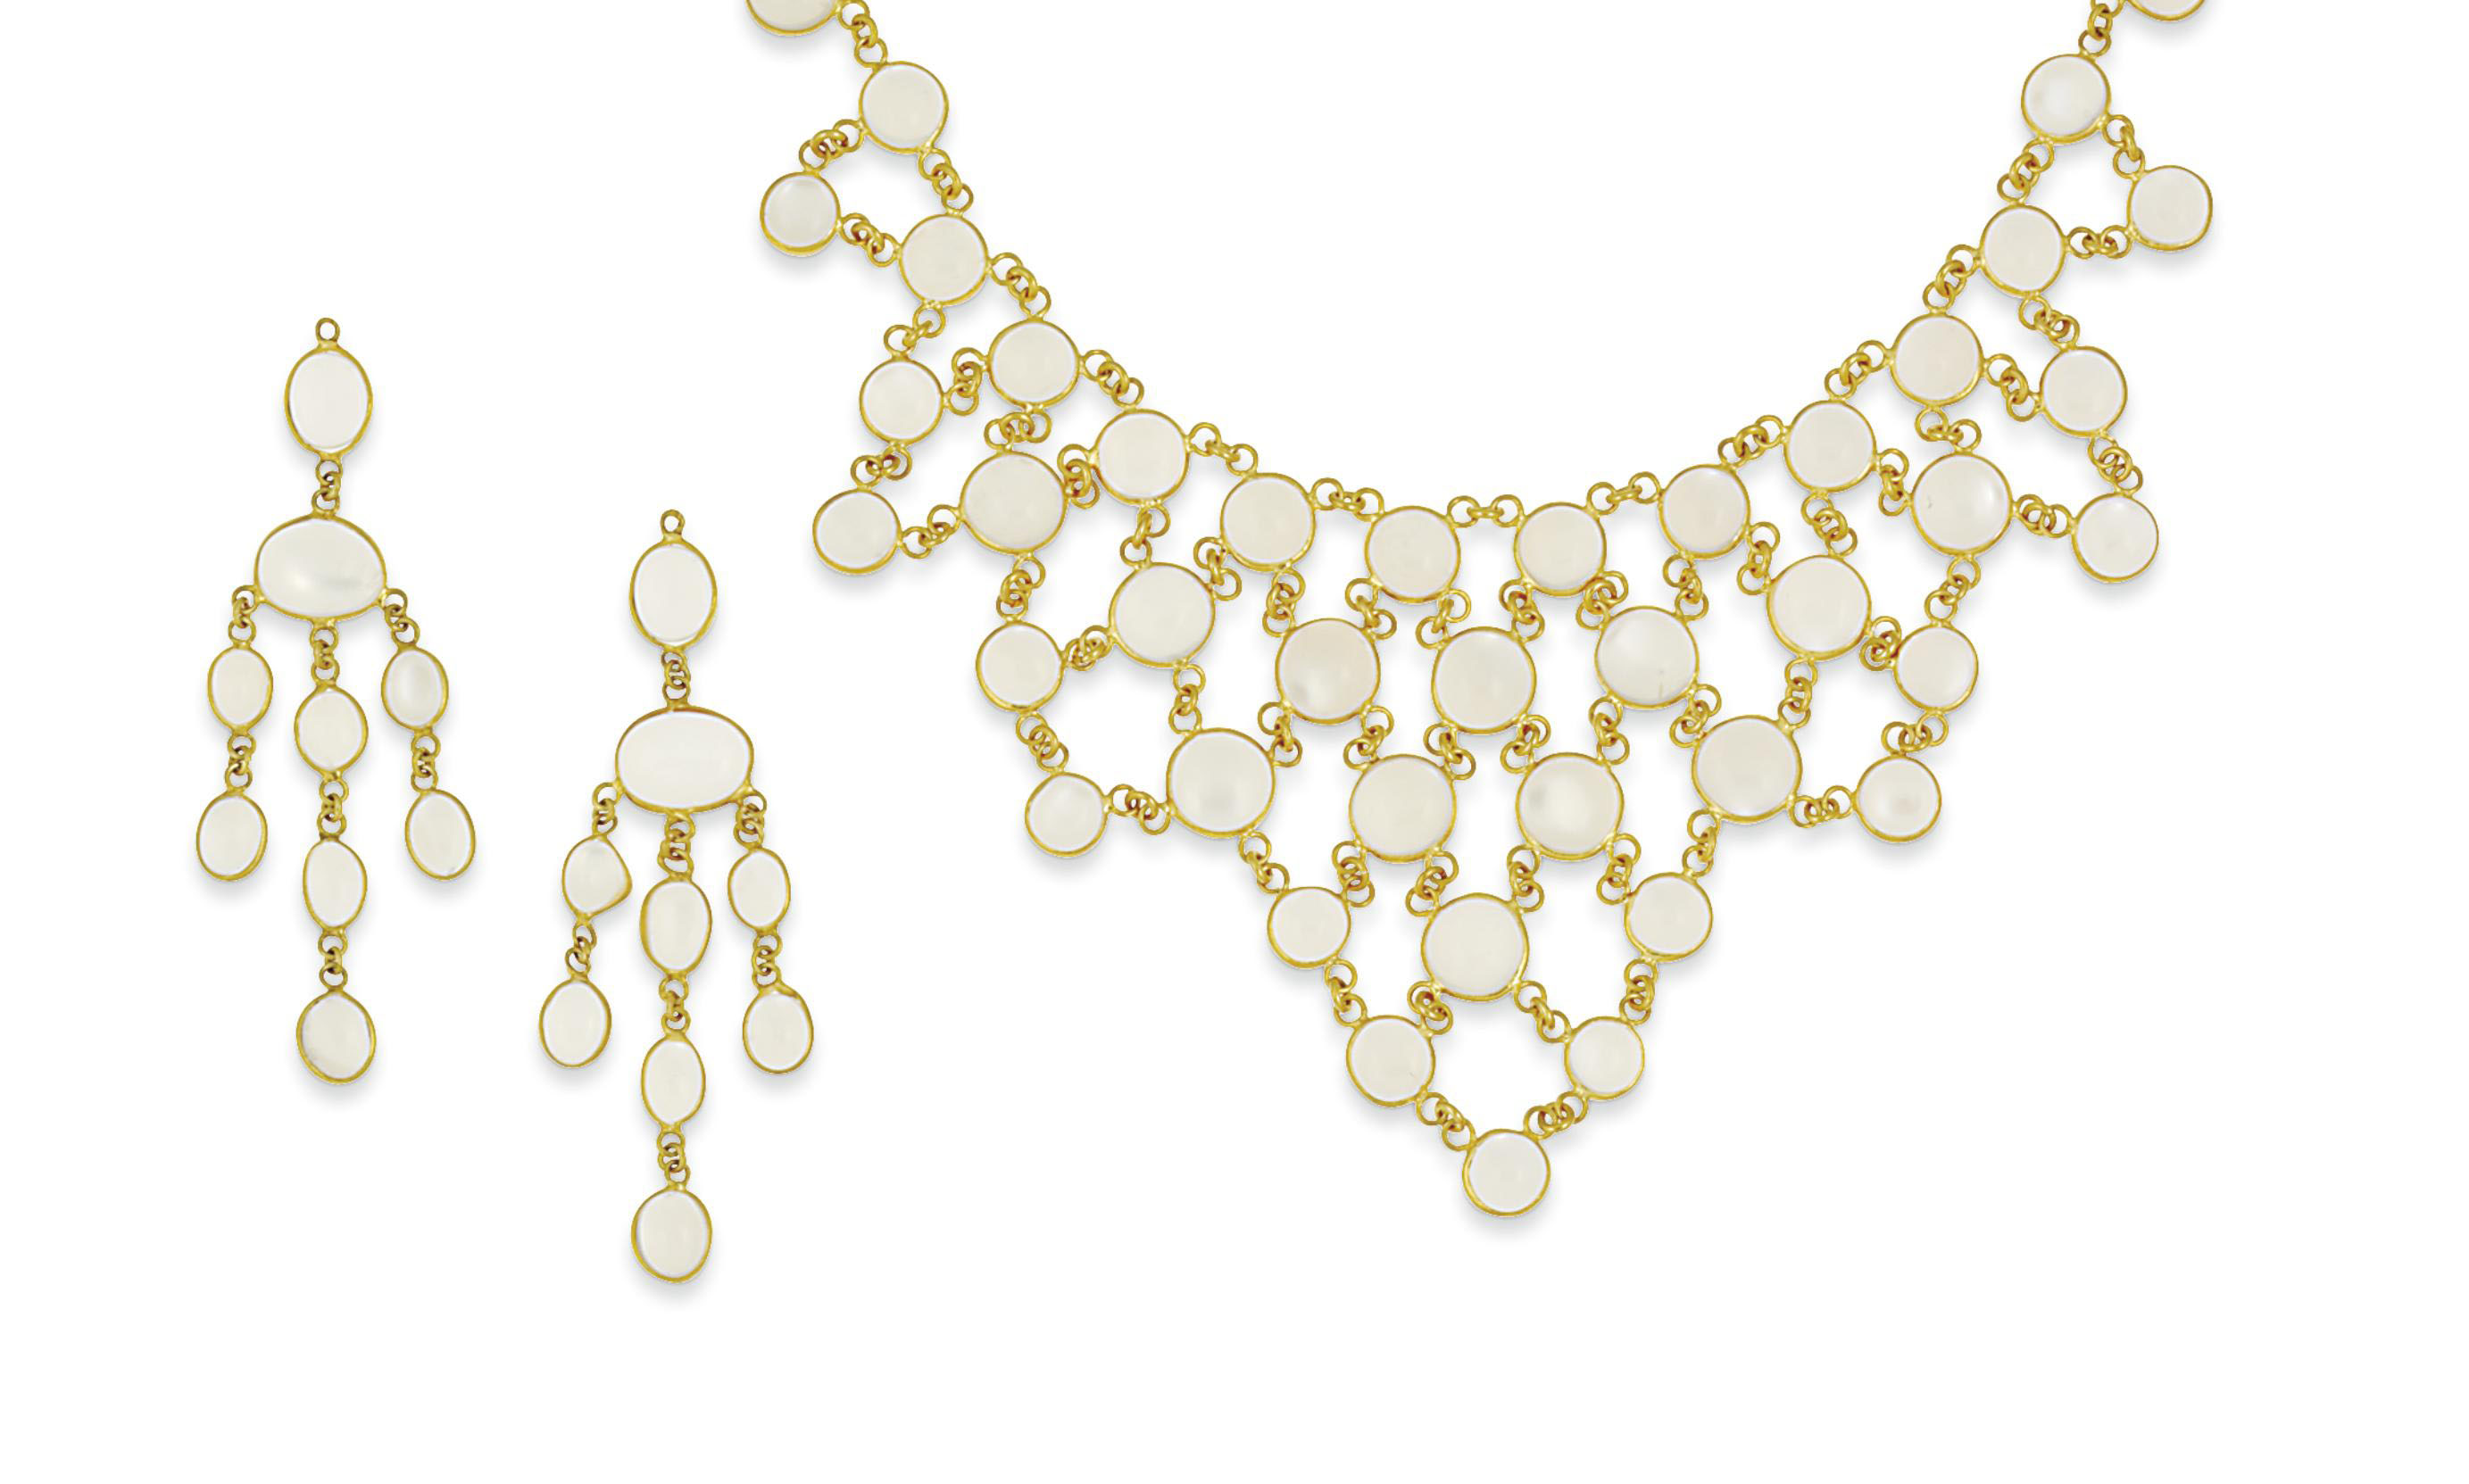 An 18ct gold, moonstone neckla